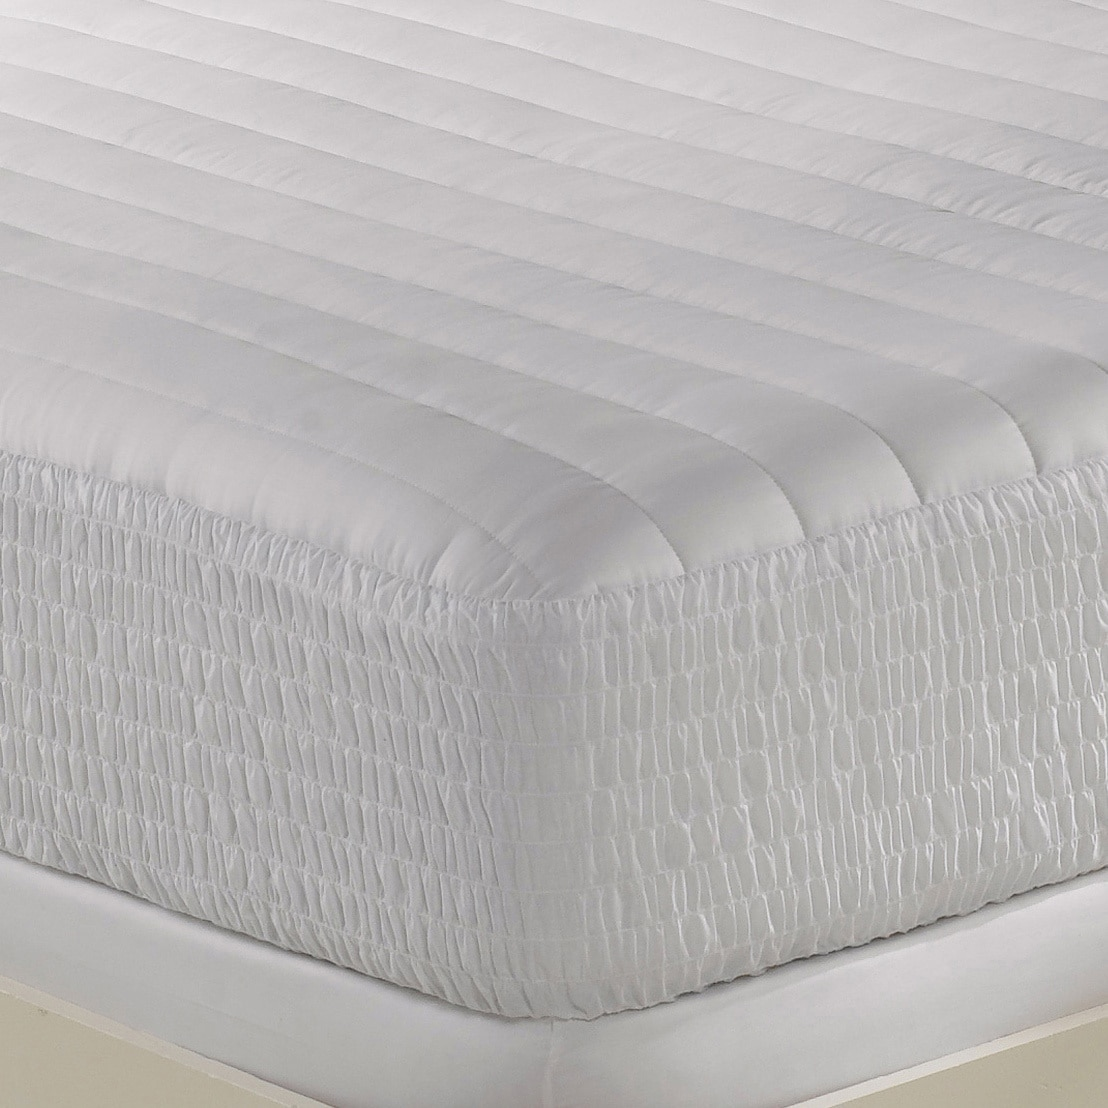 Simmons Beautyrest Beautyrest 300 Thread Count Egyptian Cotton Mattress Pad by Louisville Bedding Company